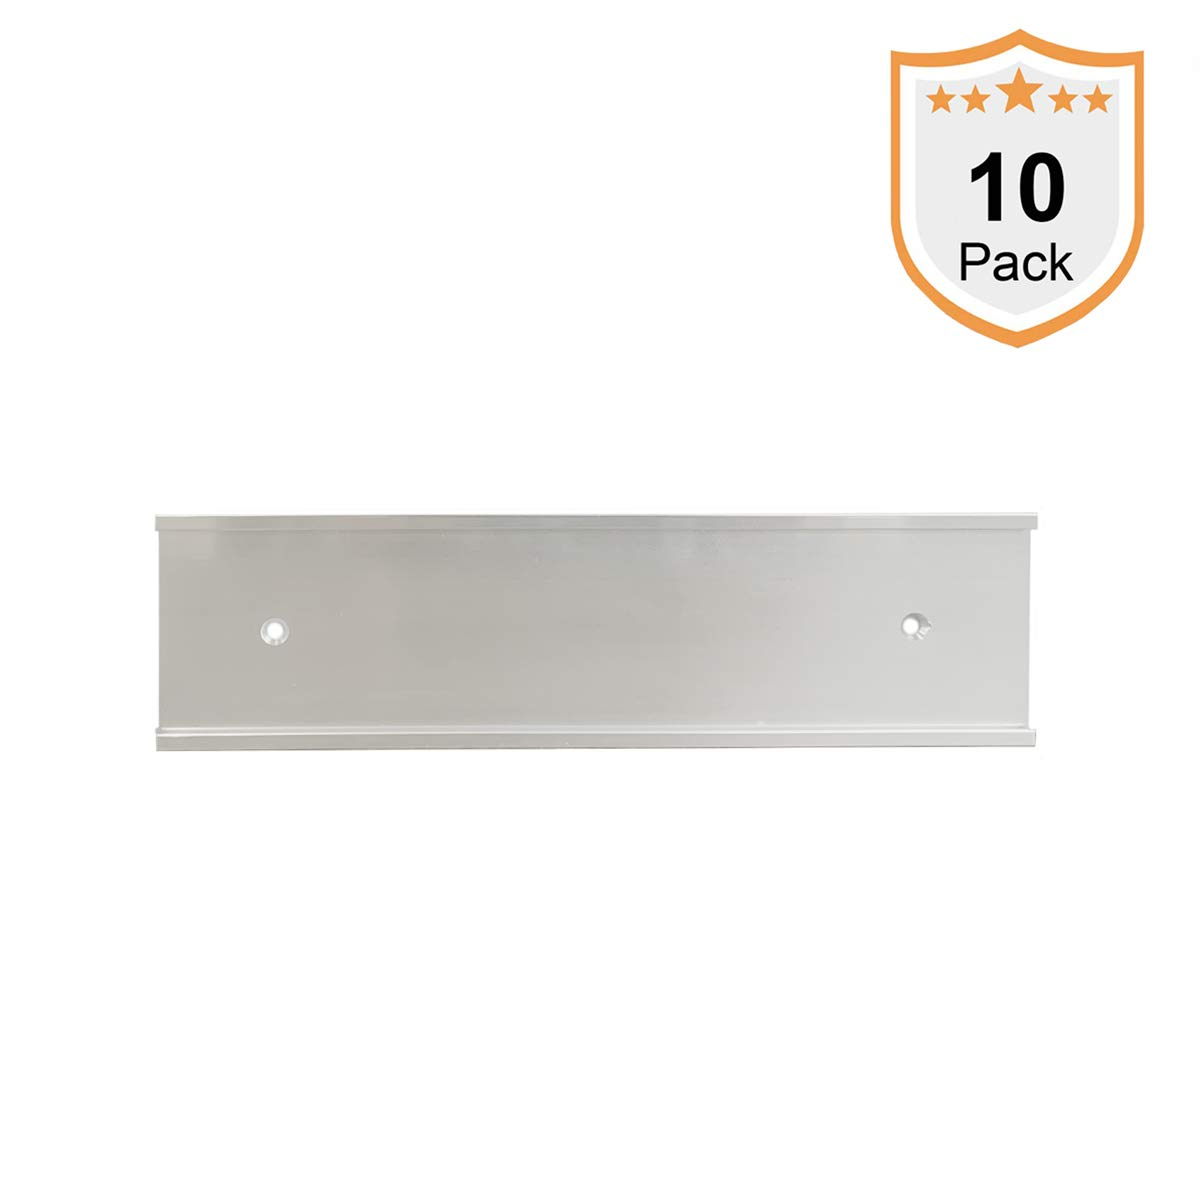 Nameplate Holder - Wall or Door - Silver 8 x 2 (10)